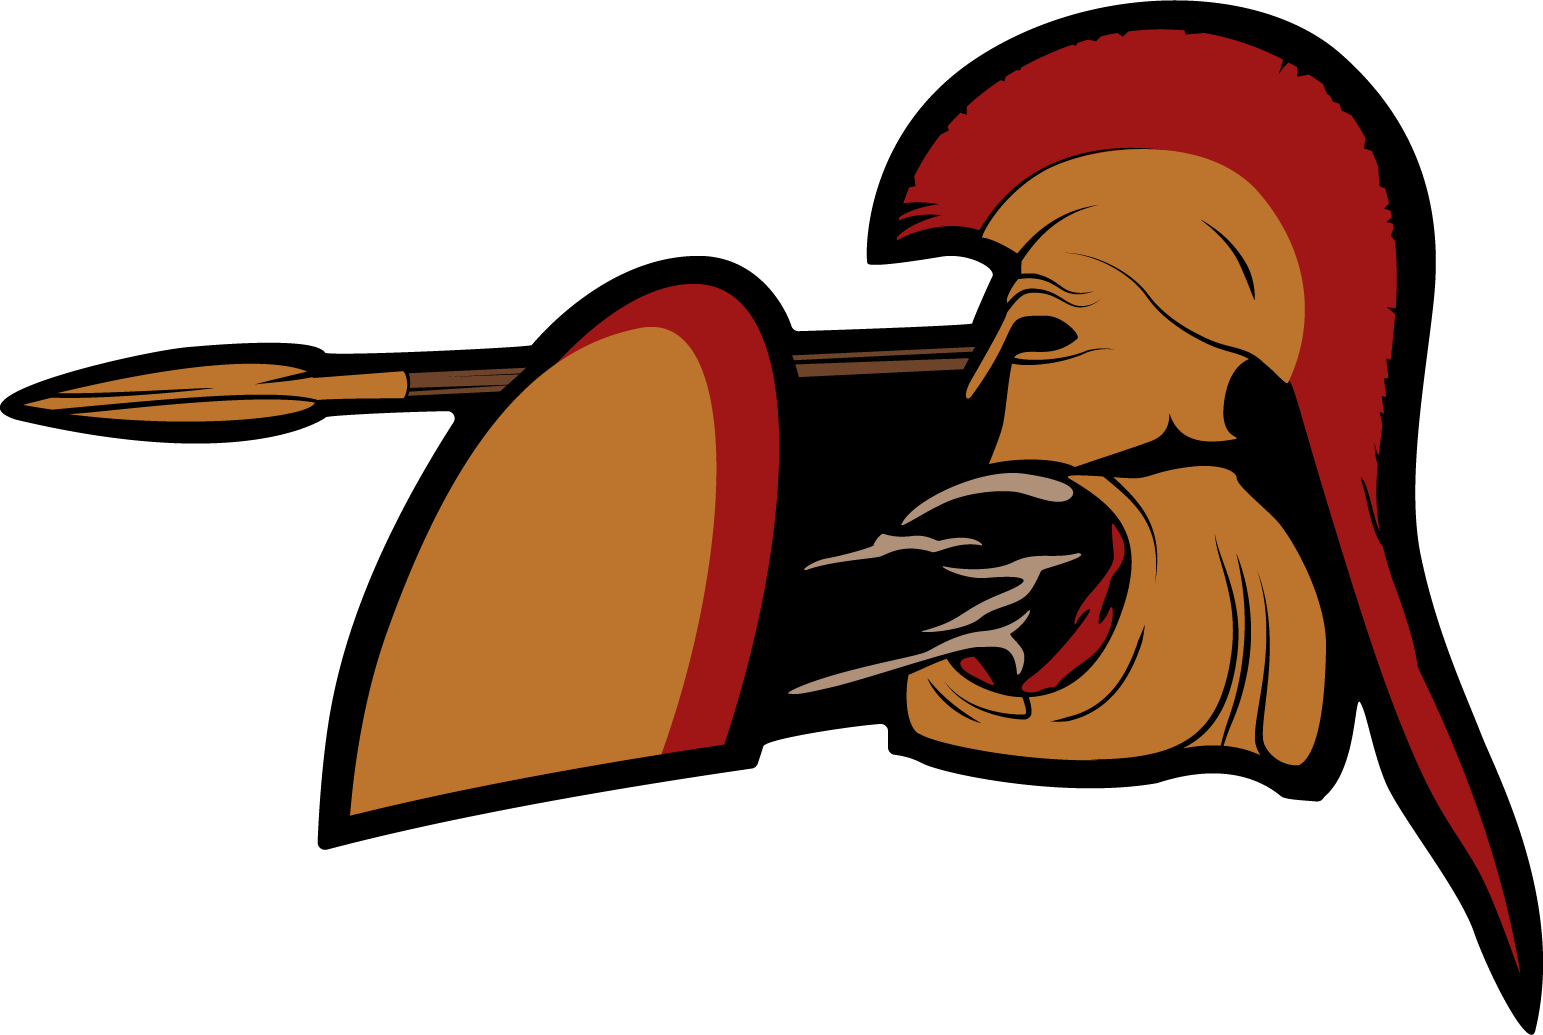 Vector drawing of a hoplite in similar pose and style to the Roman soldier vector drawing. Also designed for and used on an Imperator: Rome stream.